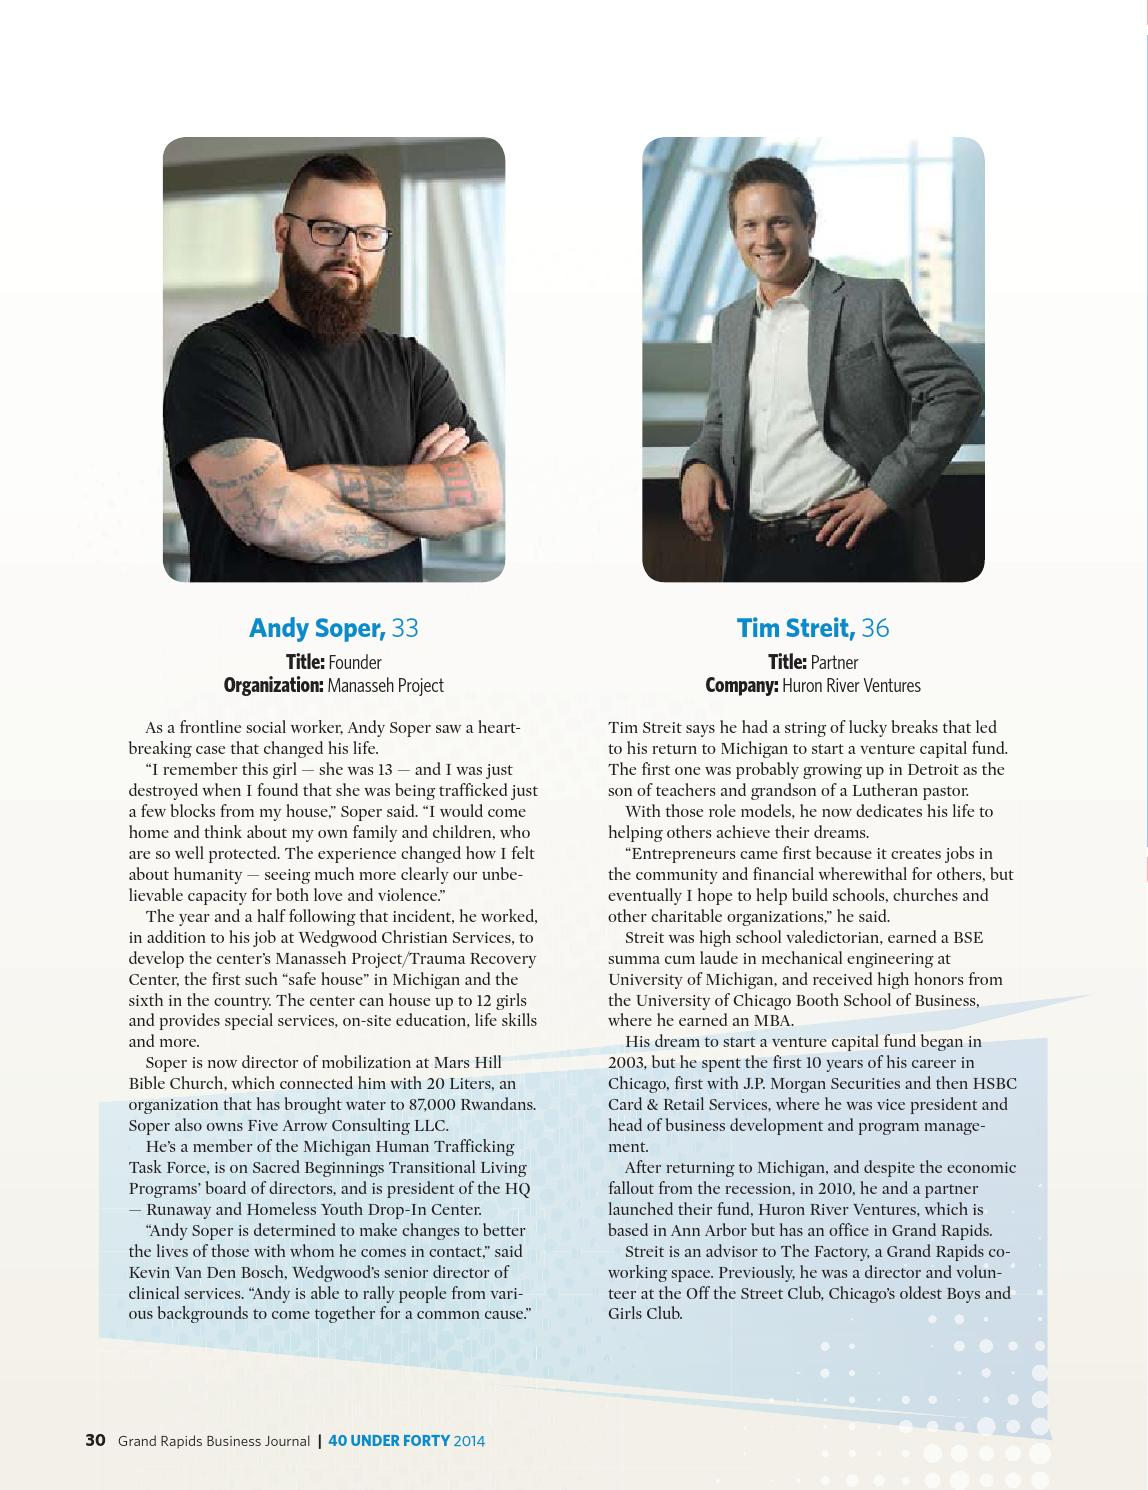 40 Under Forty - 2014 - Grand Rapids Business Journal by